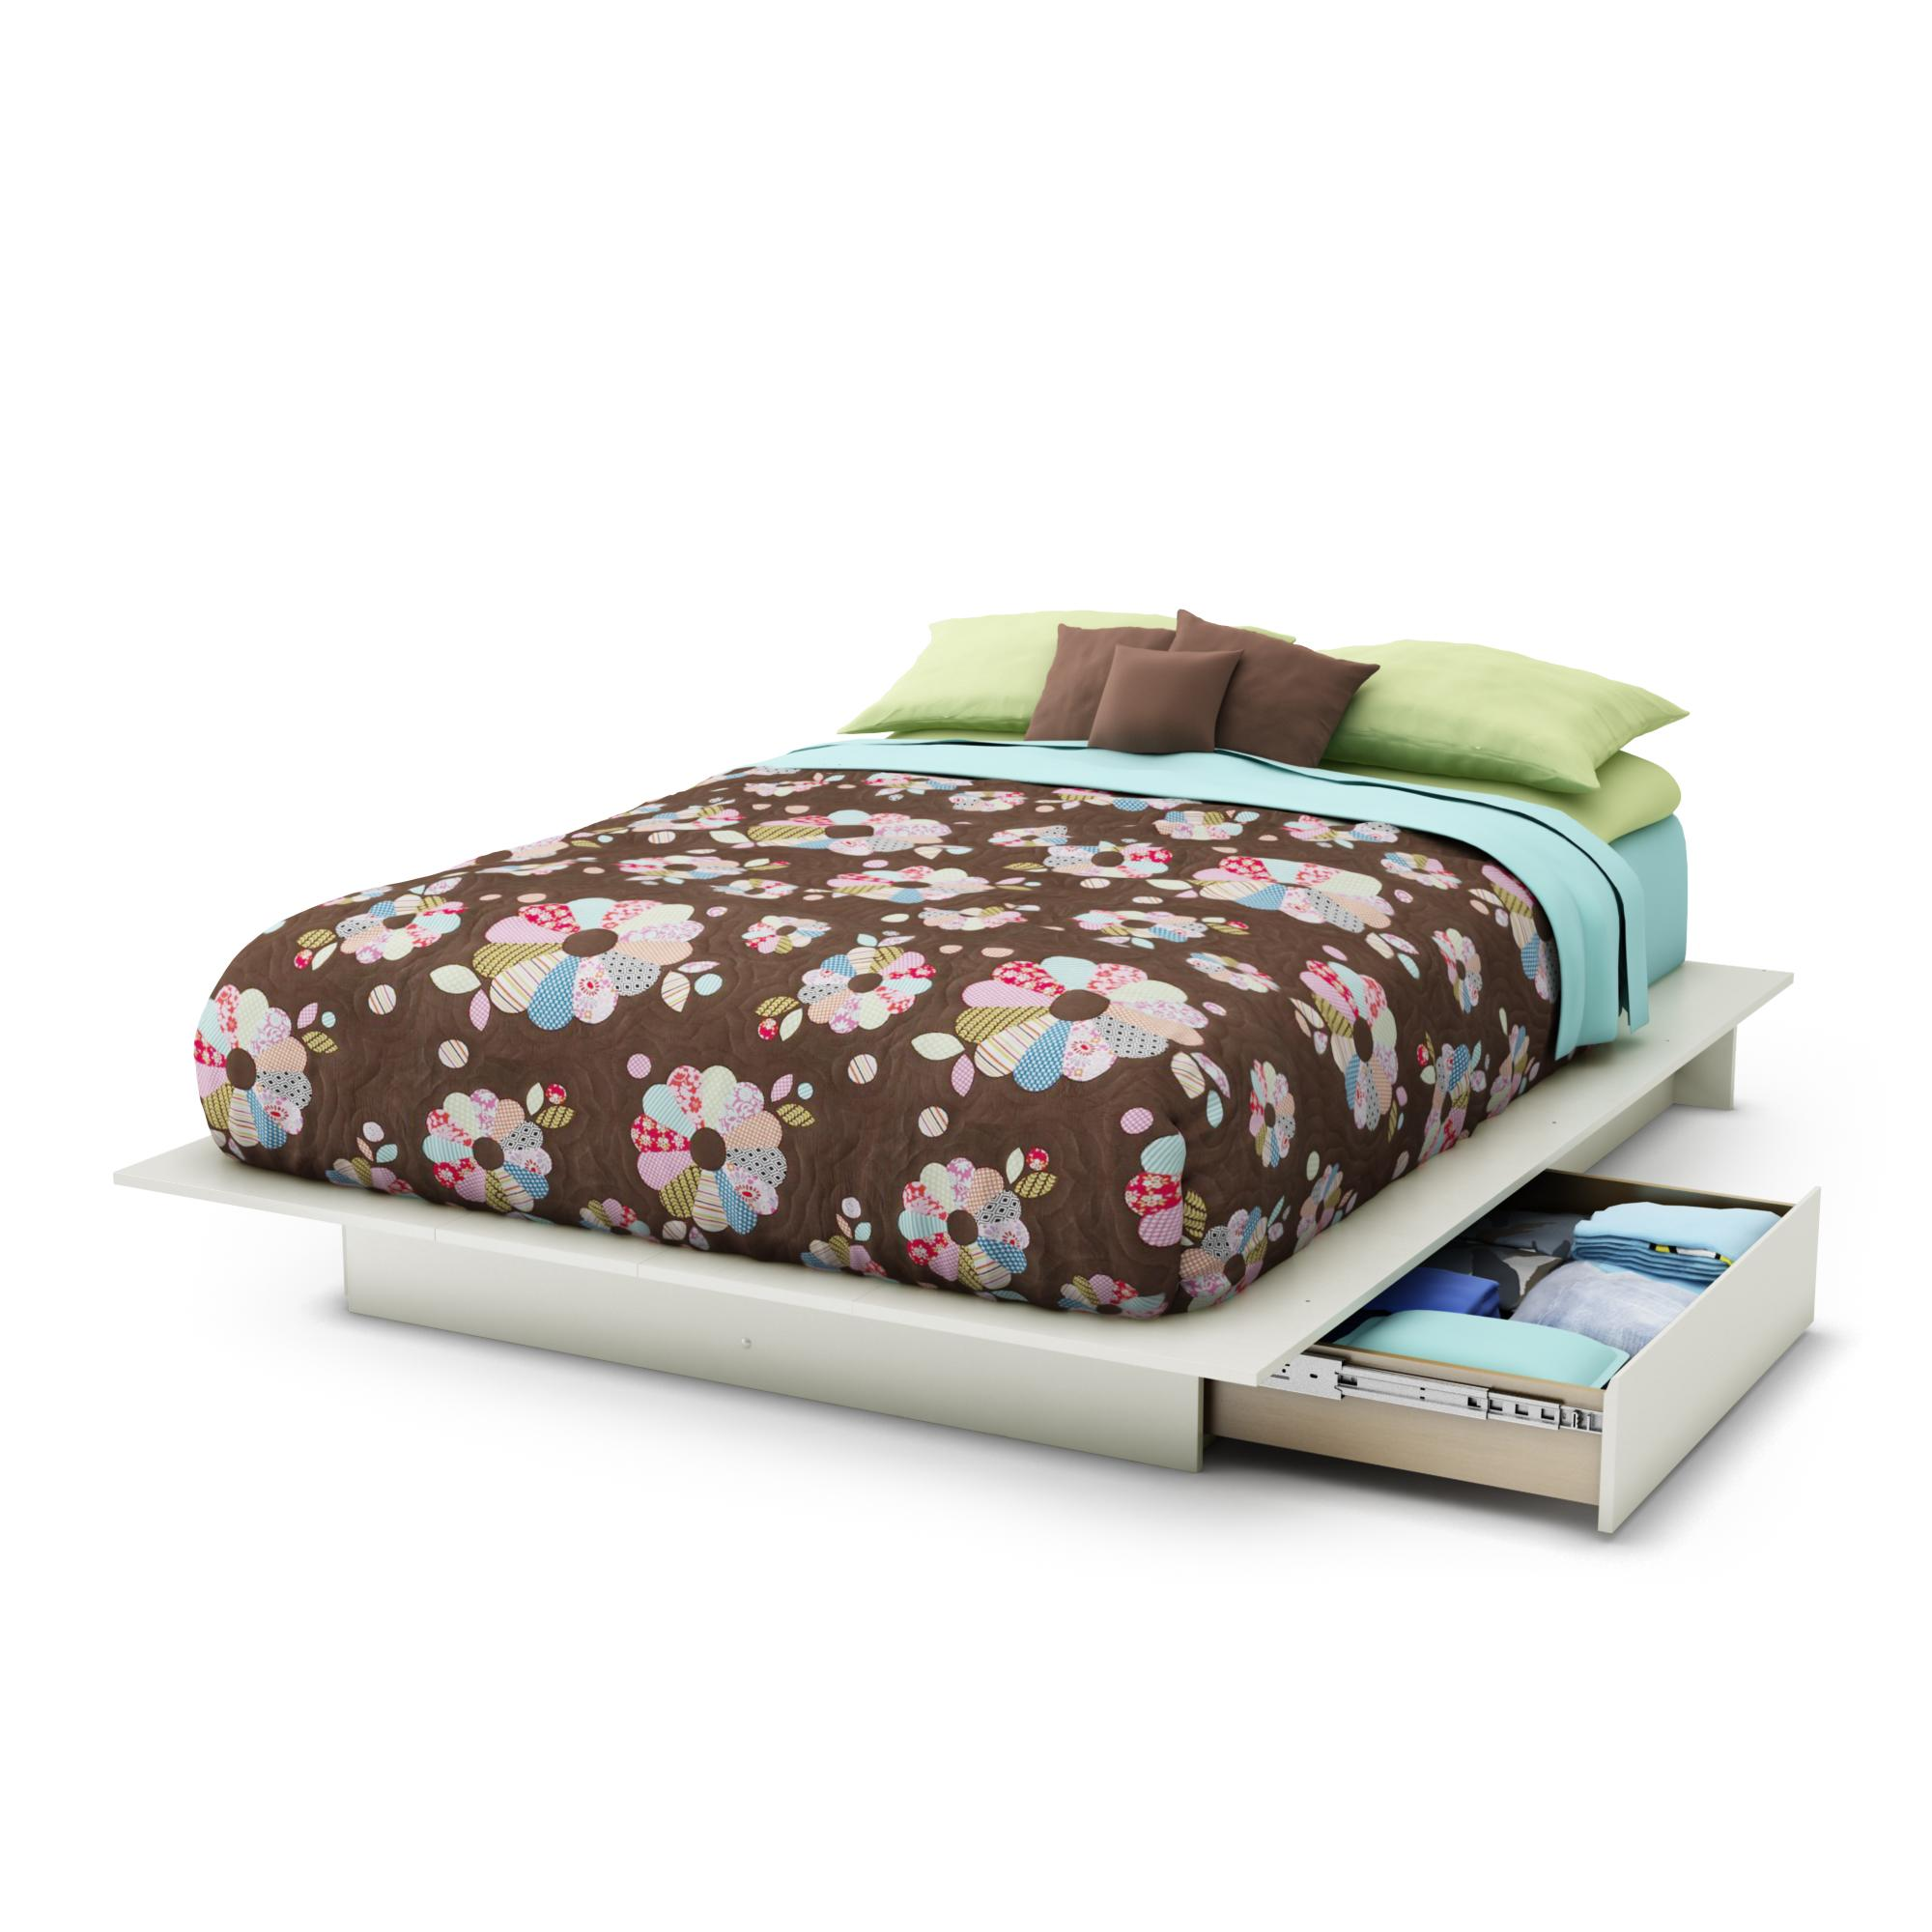 Full Bed And Queen Bed: South Shore Step One Full/Queen Platform Bed (54/60